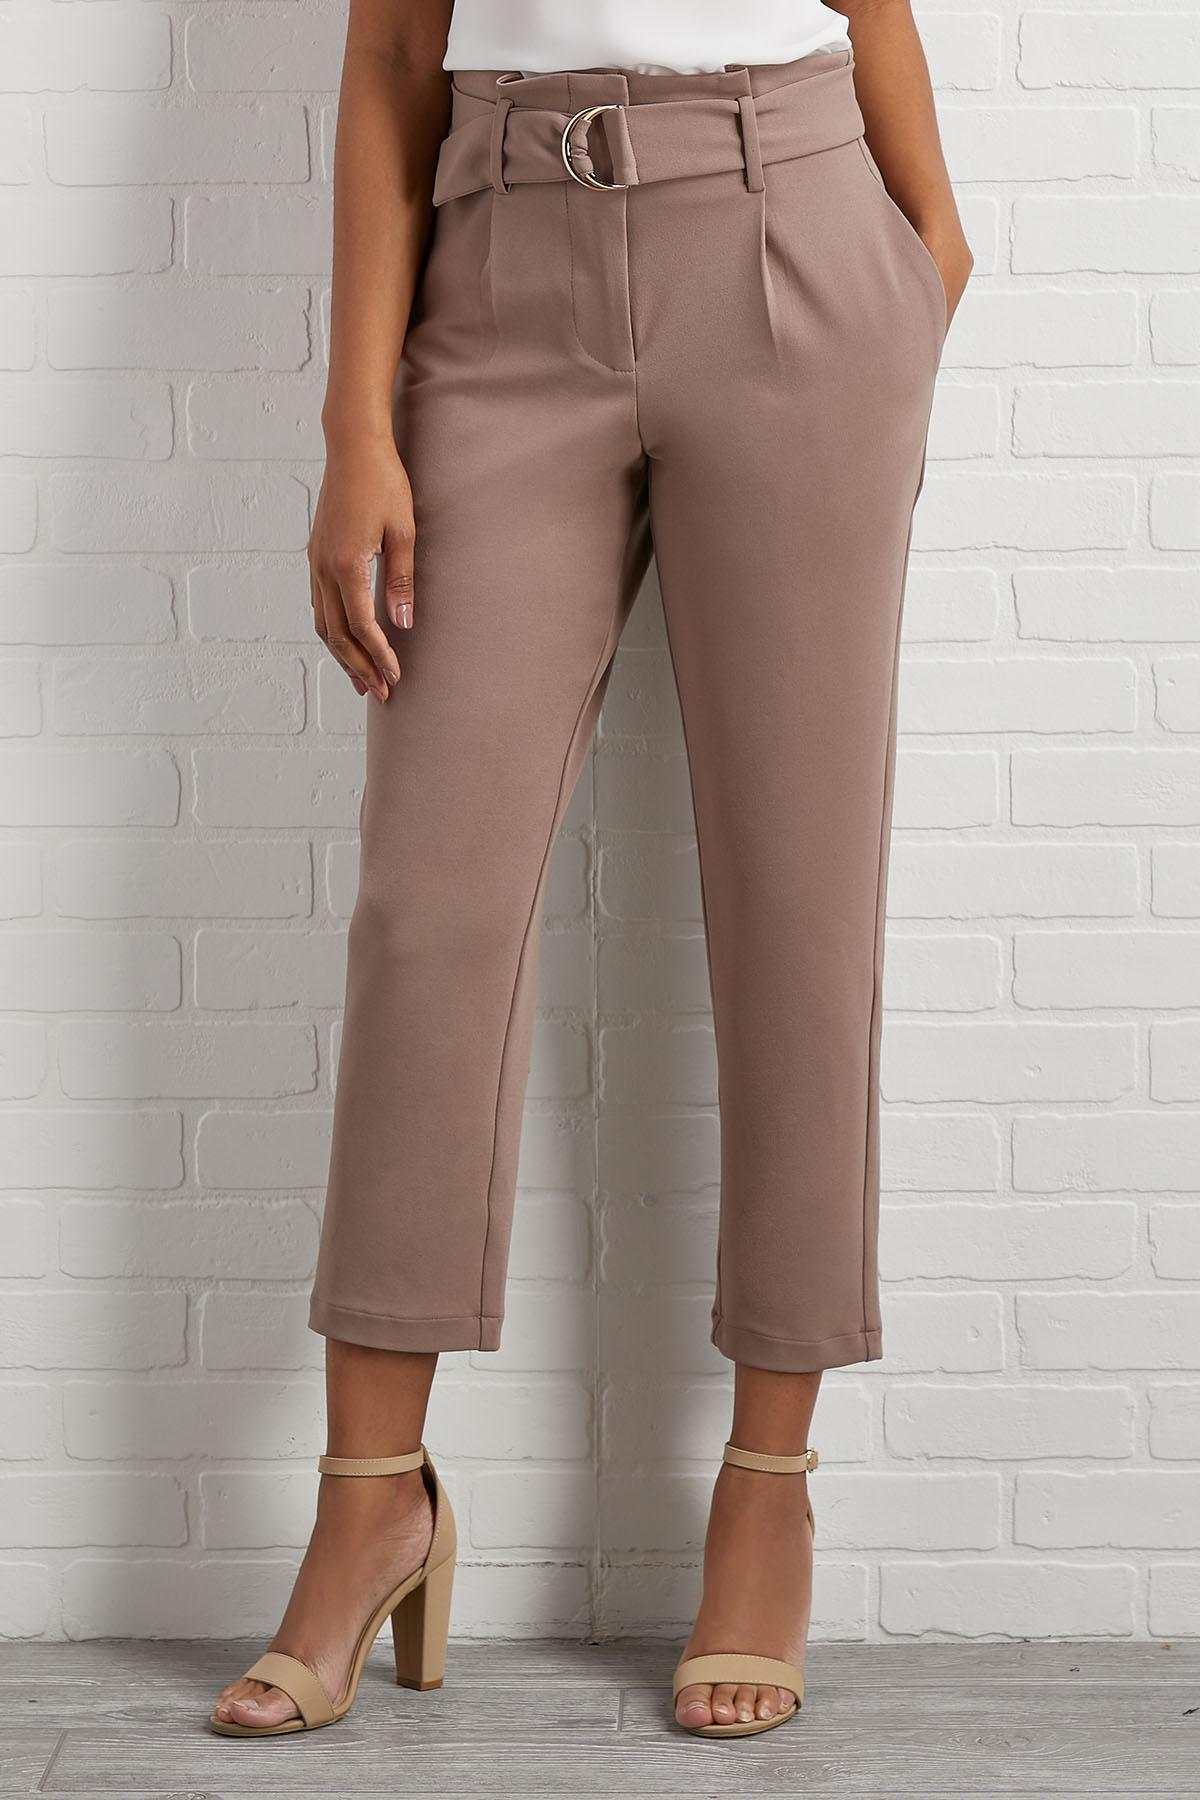 Fashion Blogger Pants